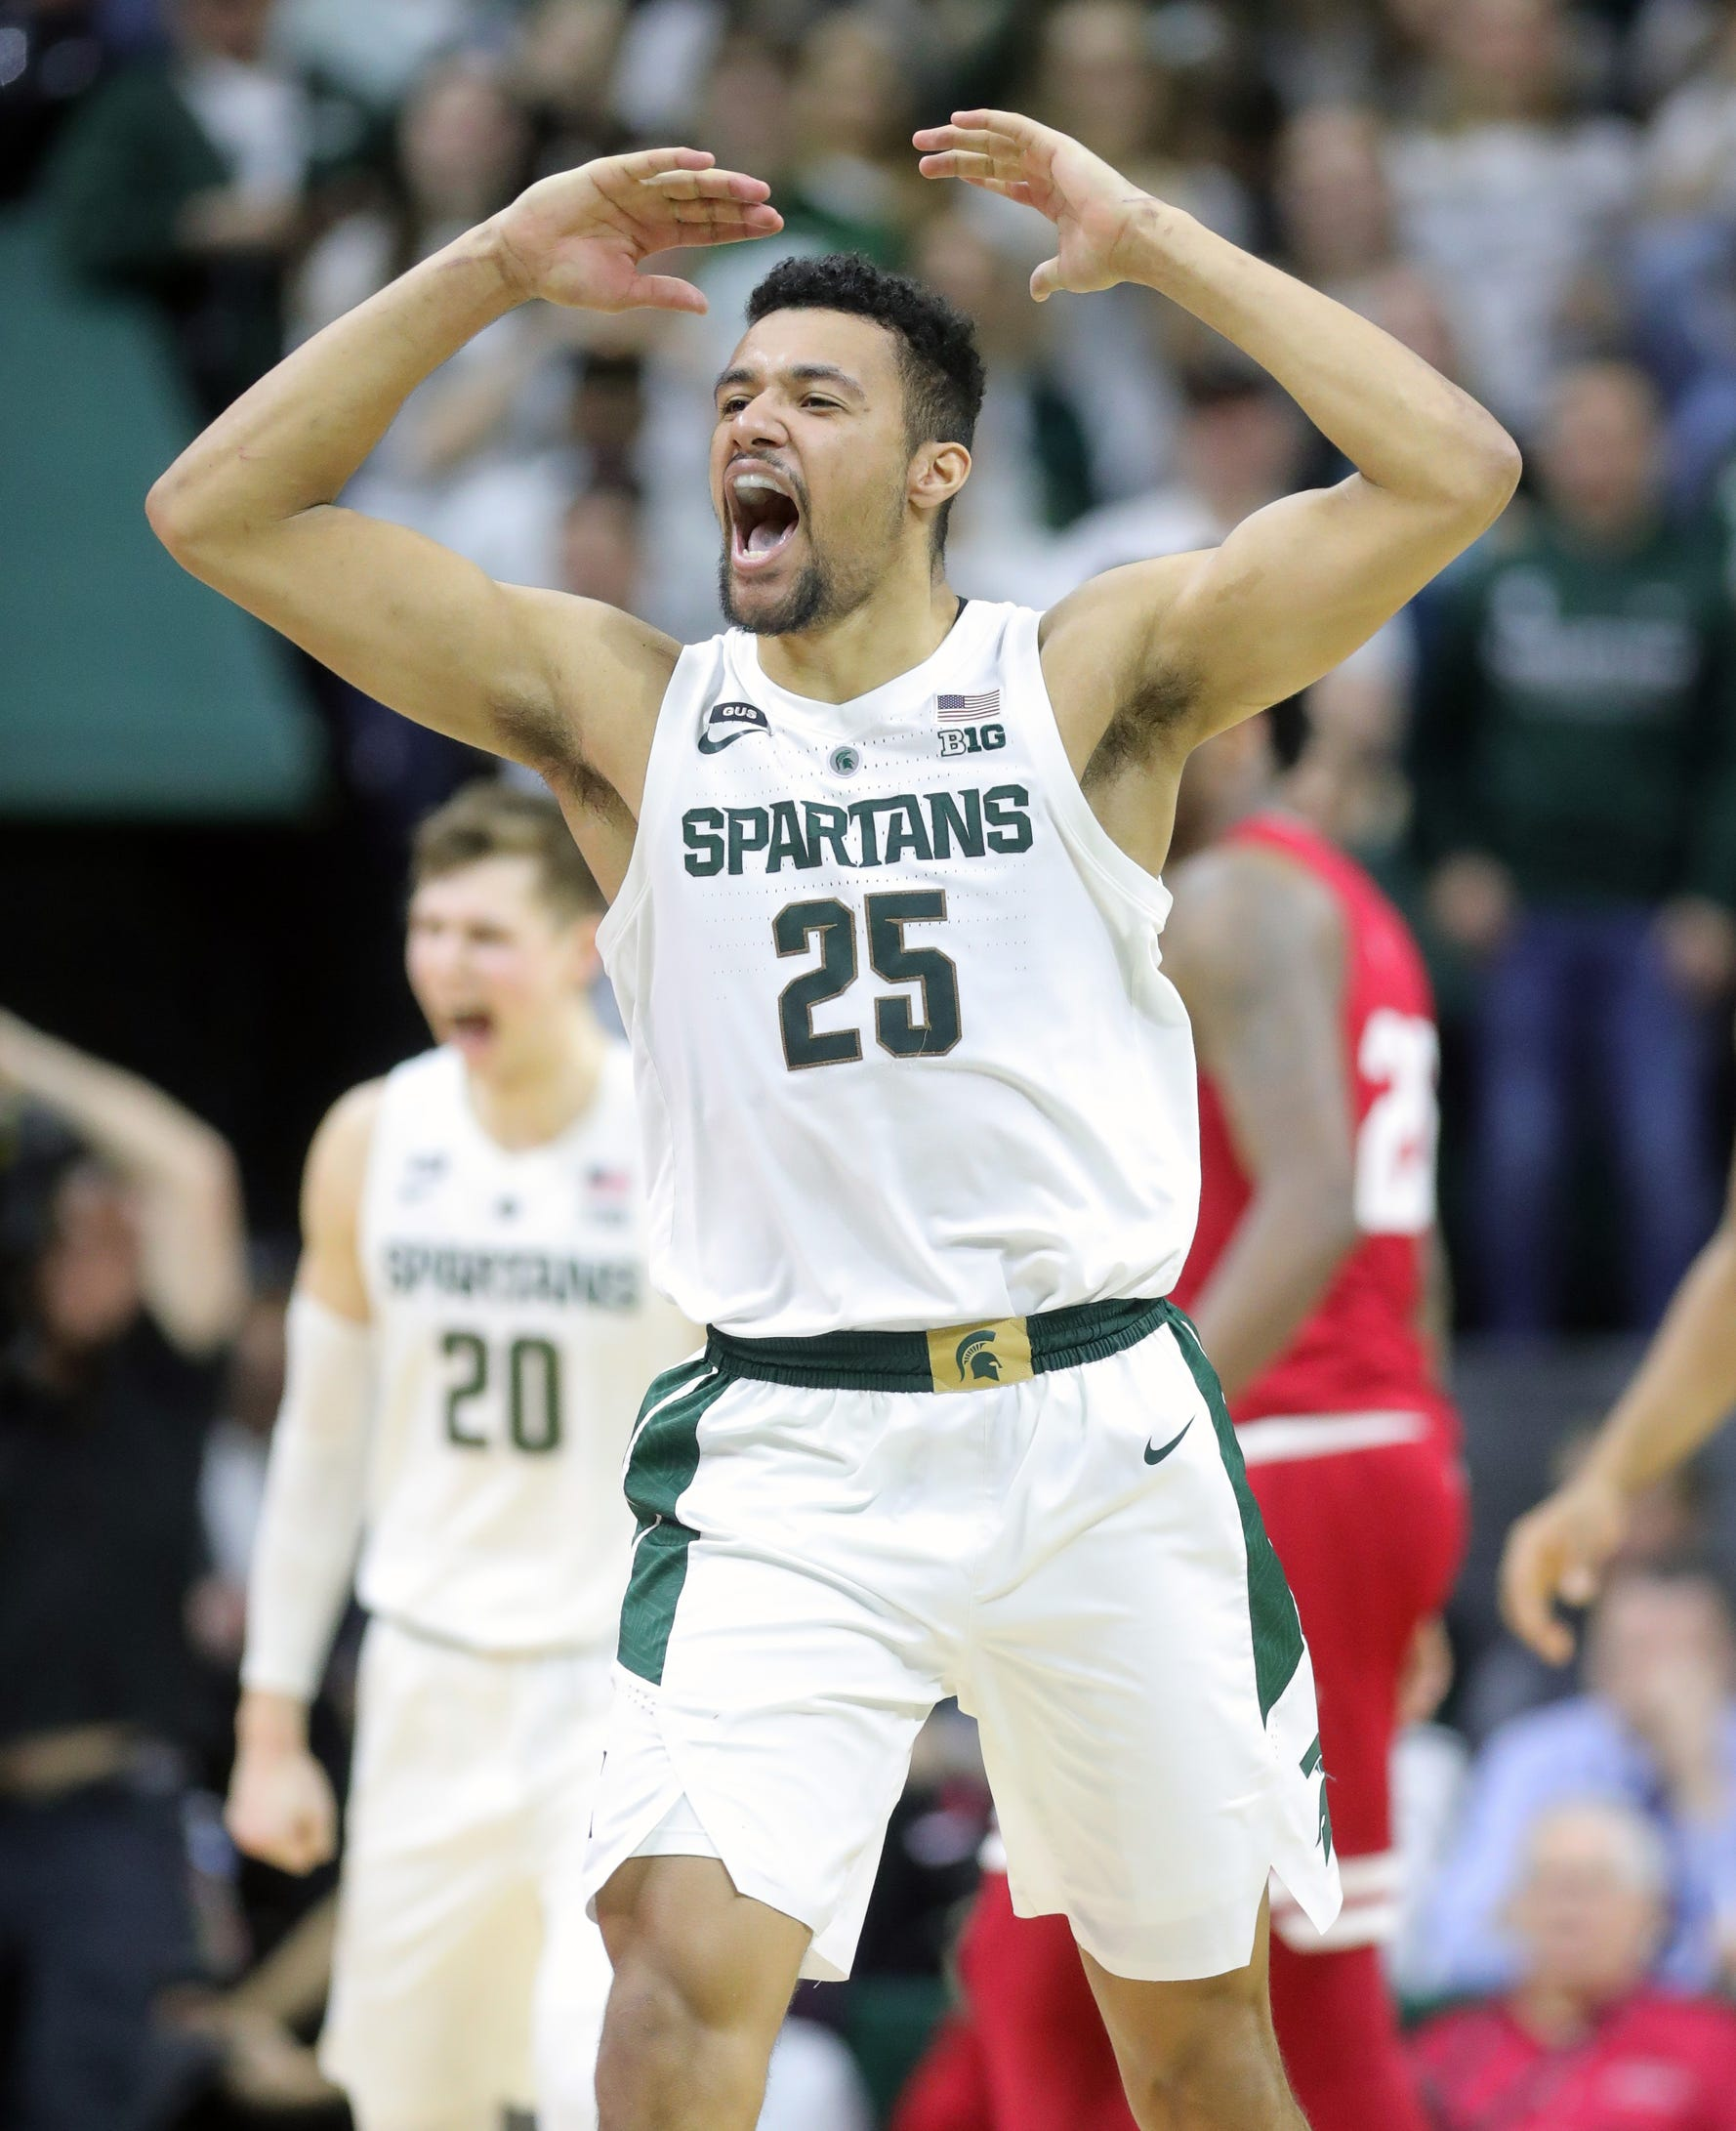 Michigan State forward Kenny Goins reacts after scoring against Indiana during the second half of the 79-75 overtime loss to Indiana on Saturday, Feb. 2, 2019, in East Lansing.